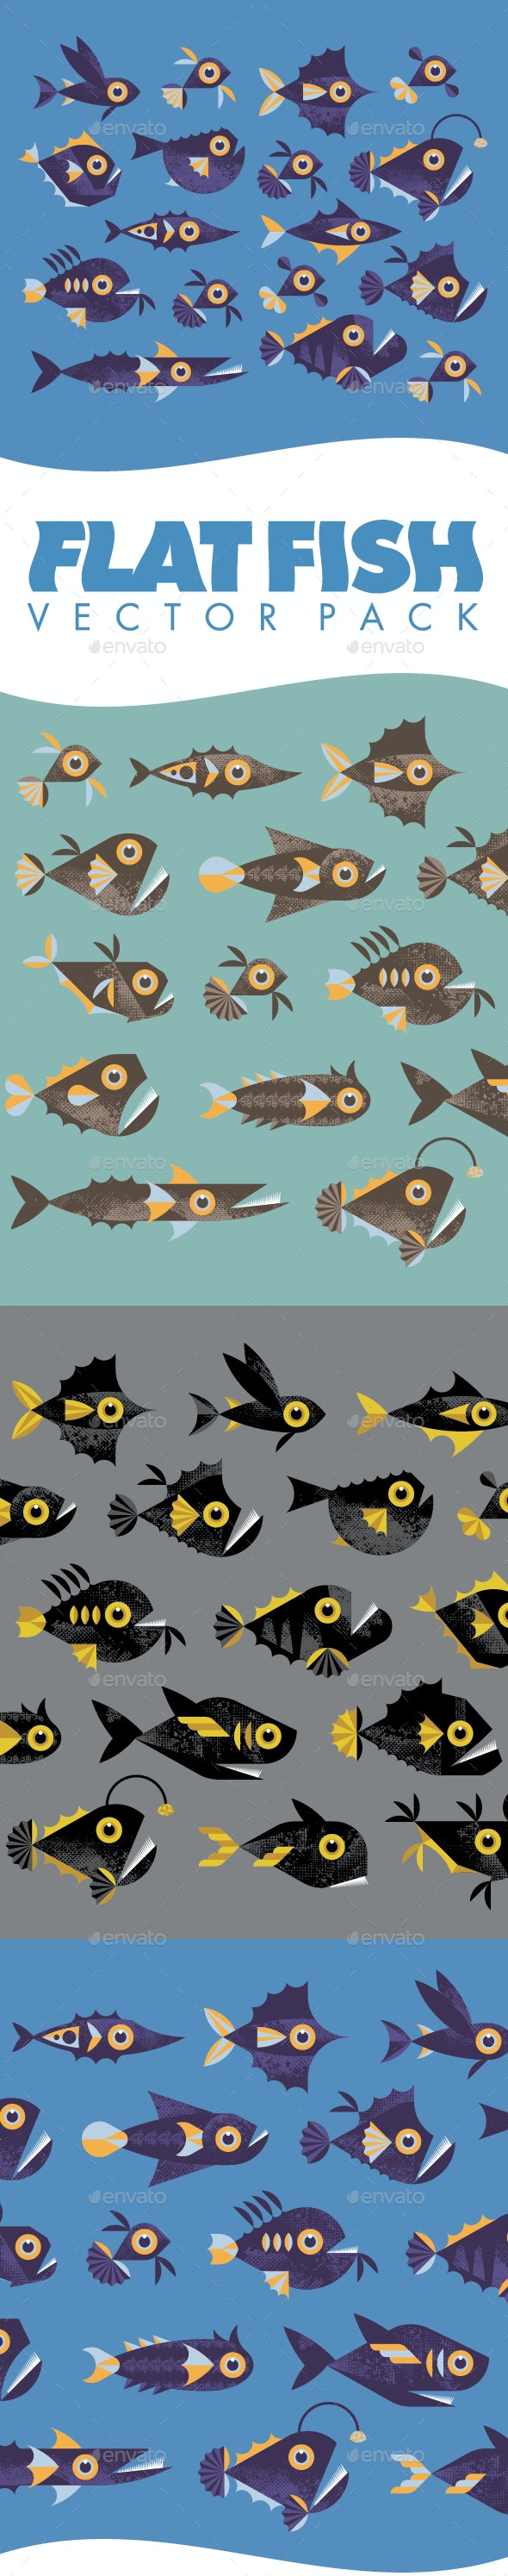 Flat Fish - Vector Pack - Animals Characters